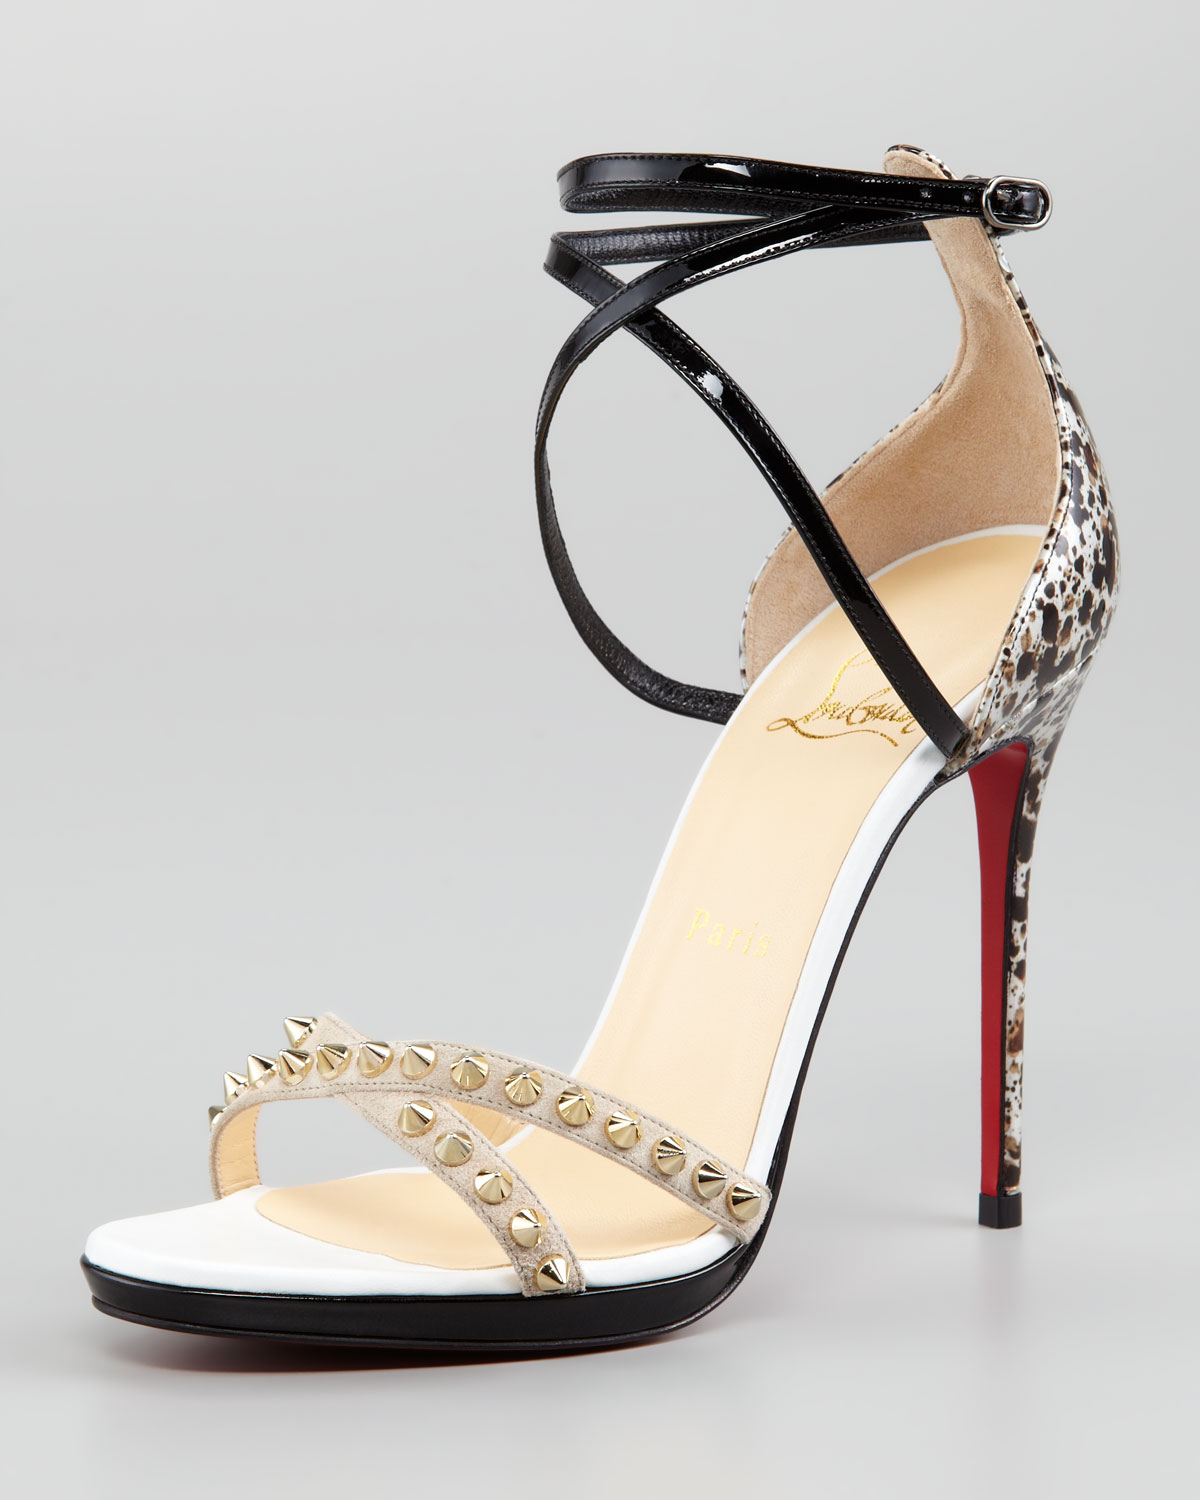 Lyst Christian Louboutin Monocronana Patent Leather And